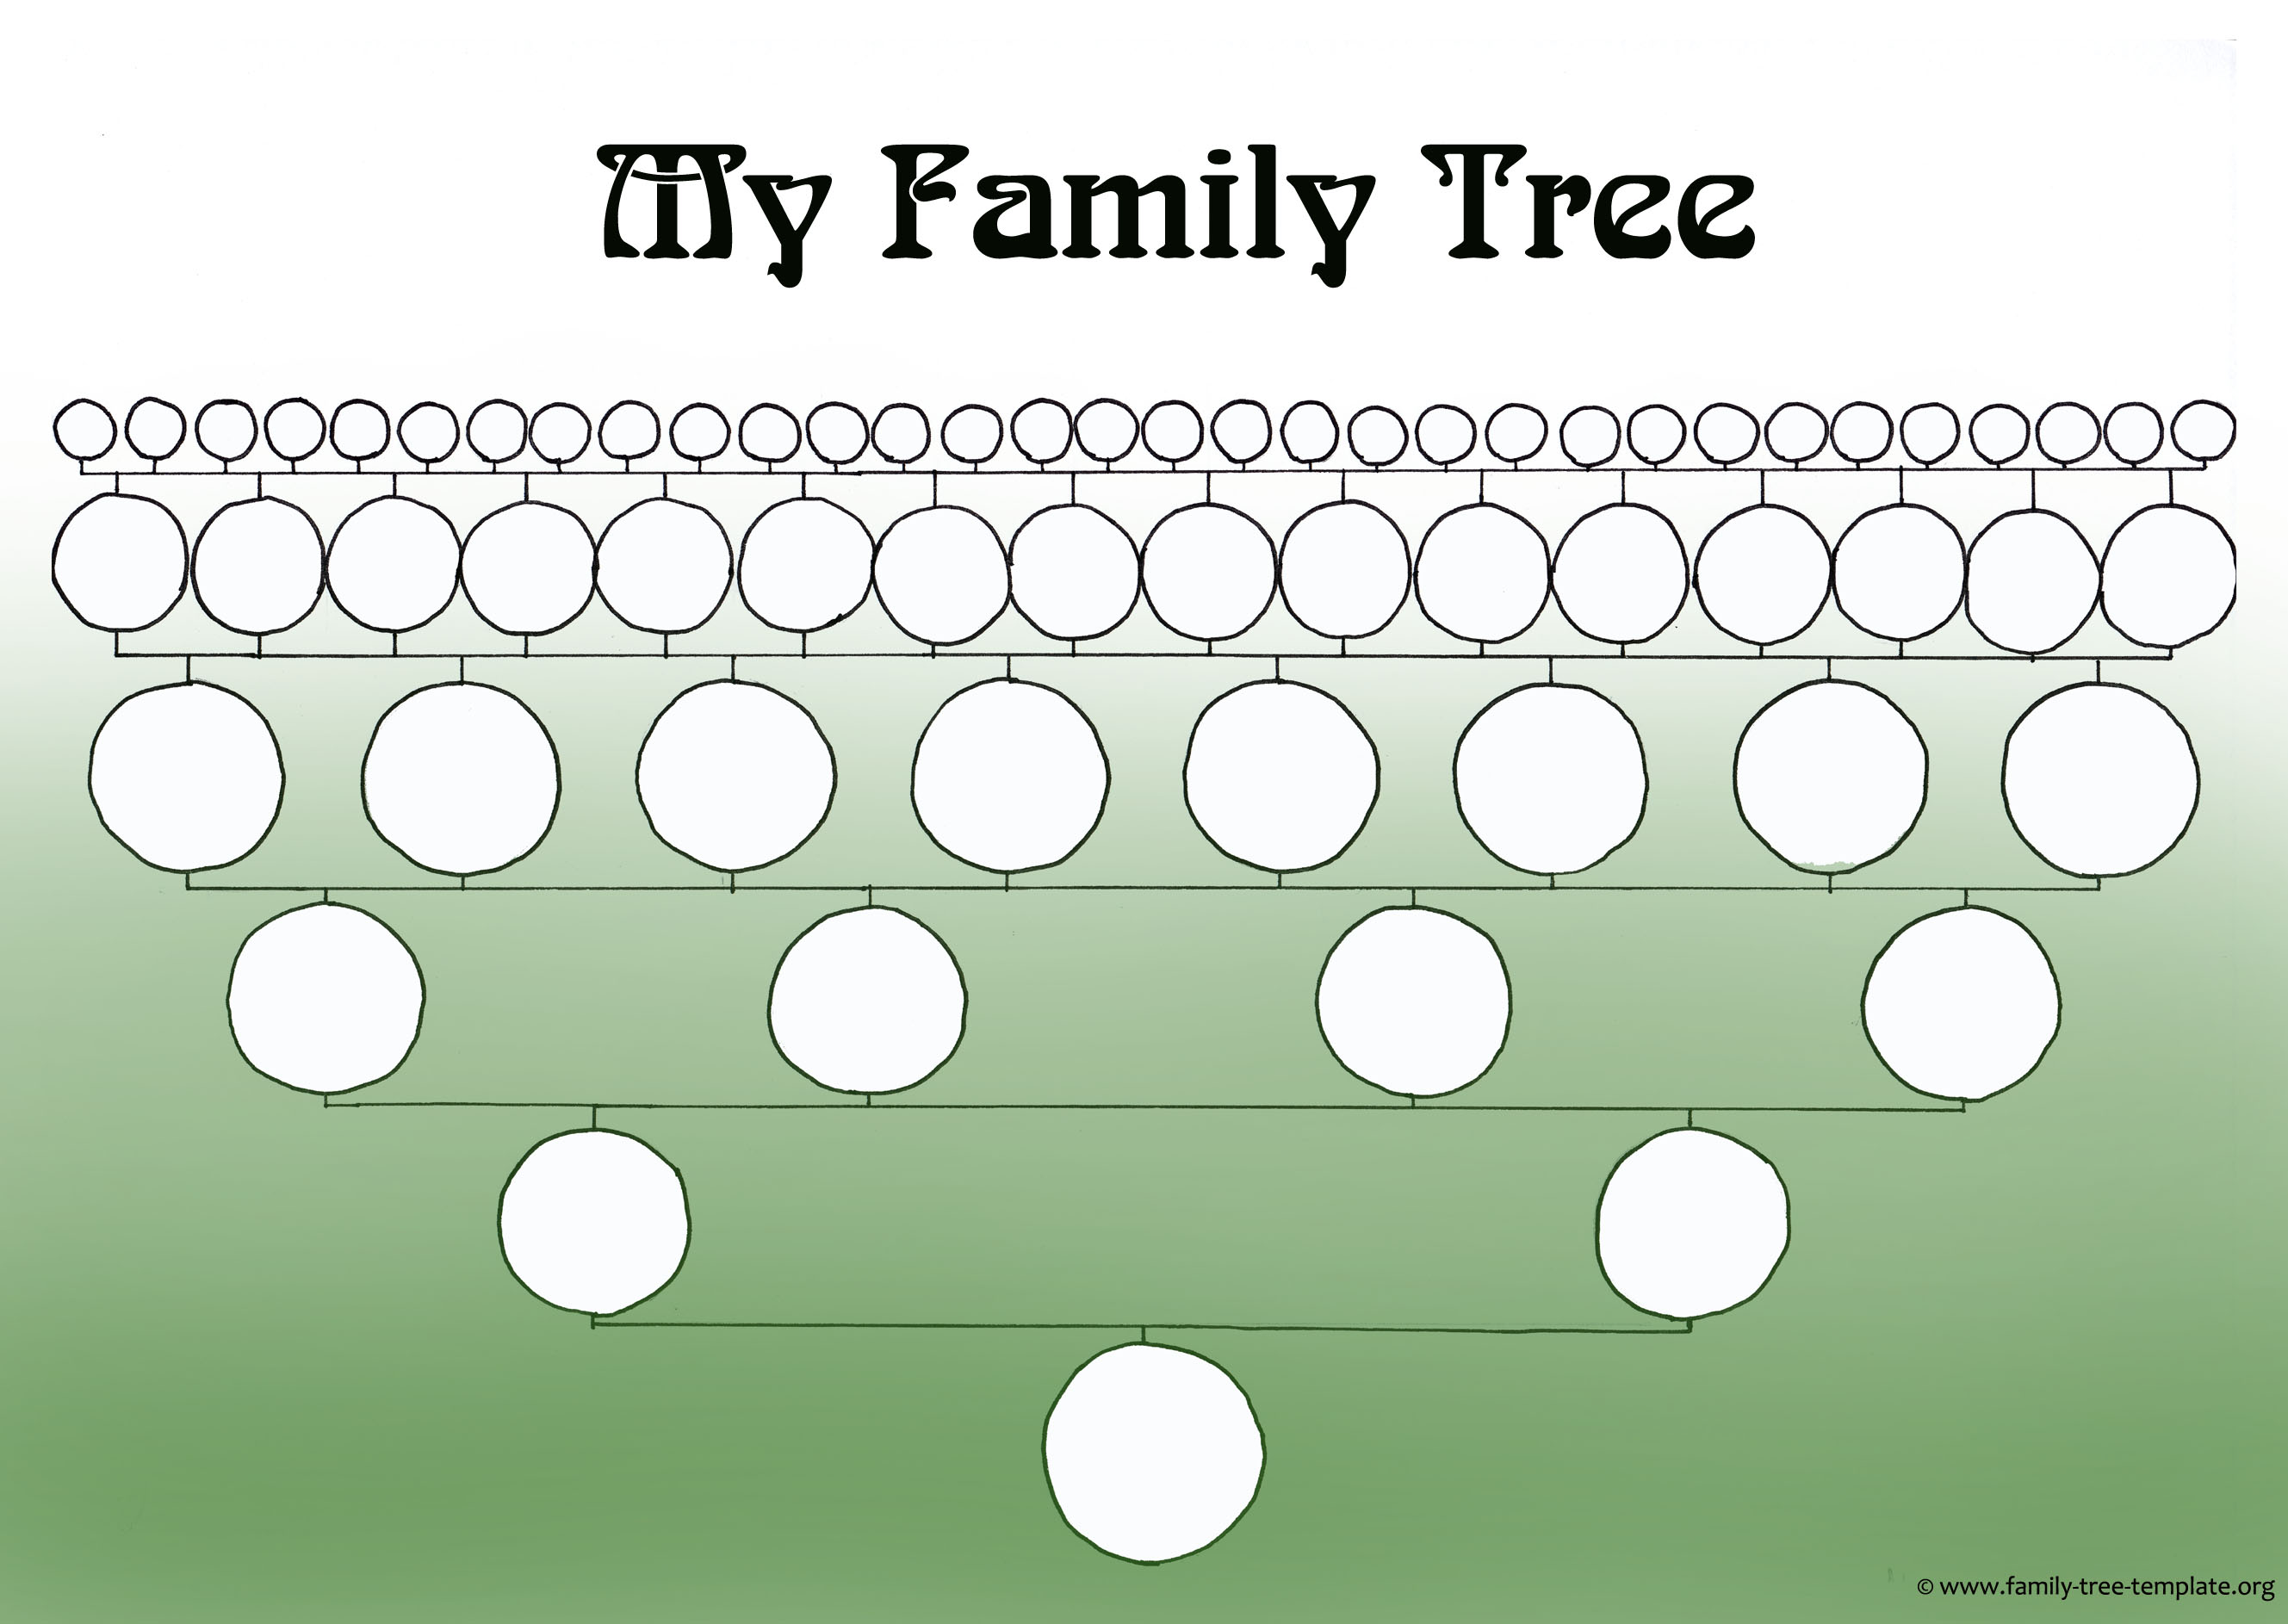 A very simple family tree with circles representing family members.